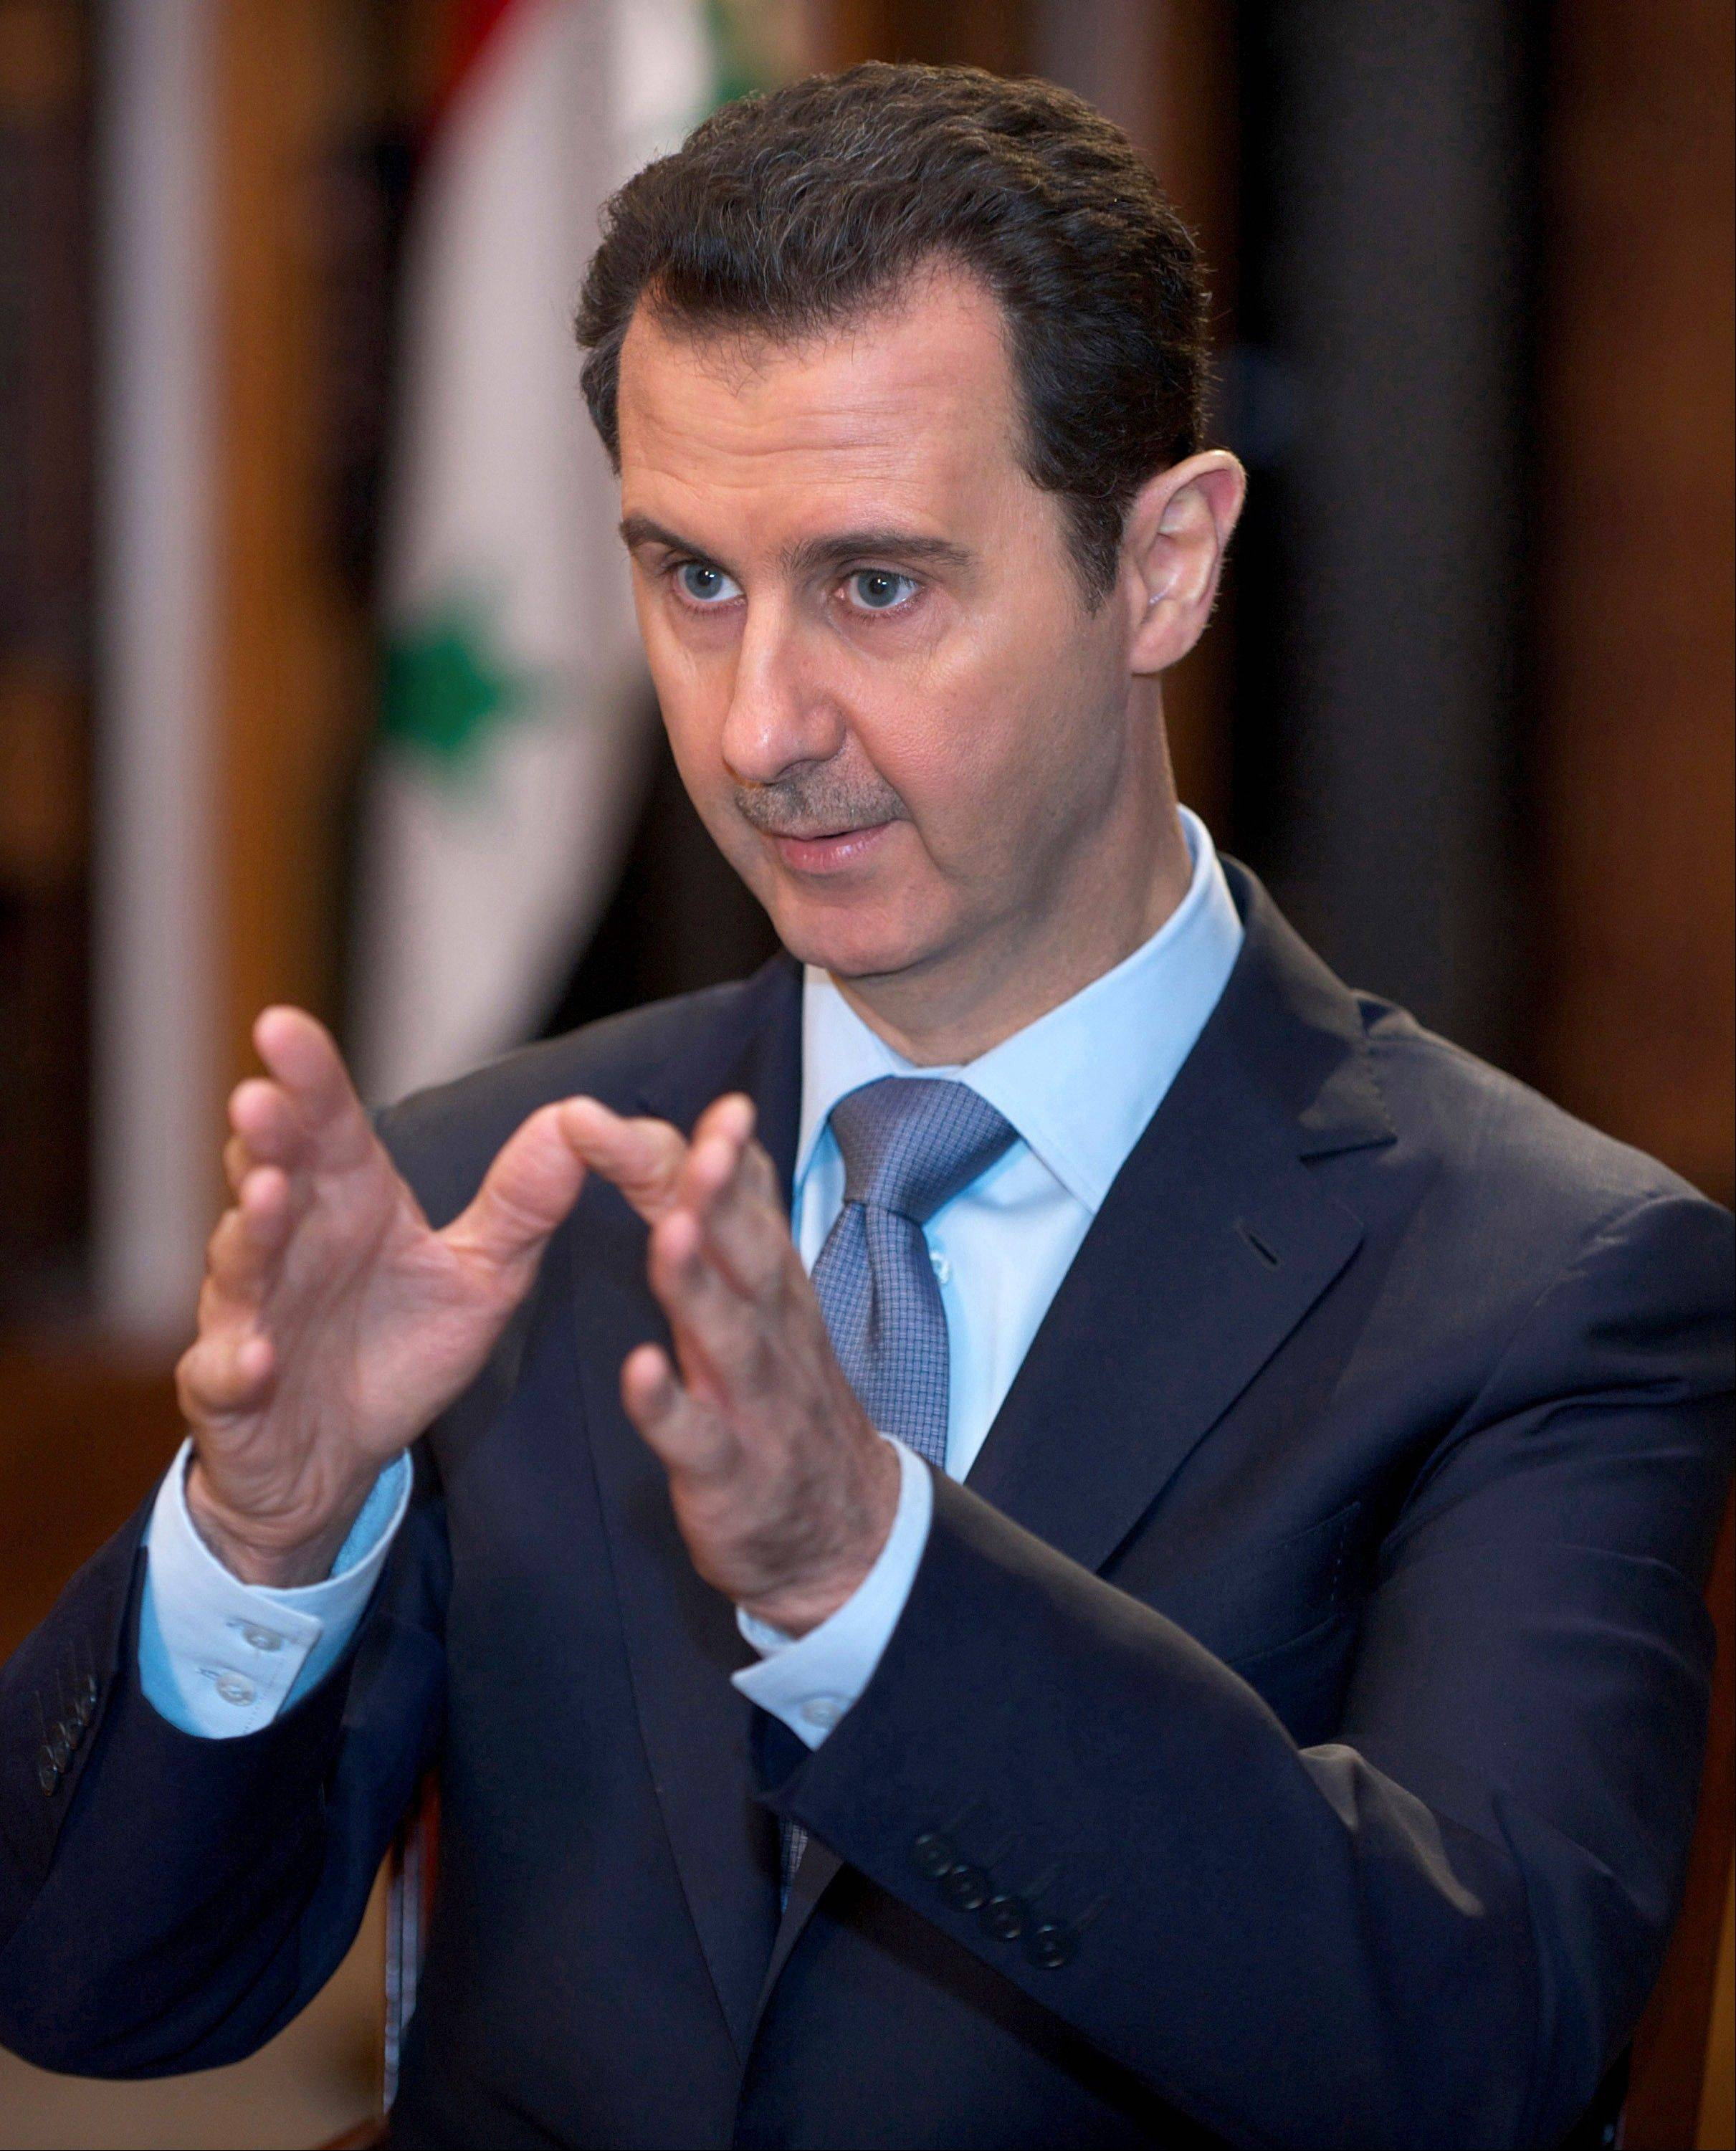 Syria has been ruled by President Bashar Assad's family since 1970, and Iran is Assad's strongest regional ally, supplying his government with advisers, money and materiel since the uprising began in 2011.